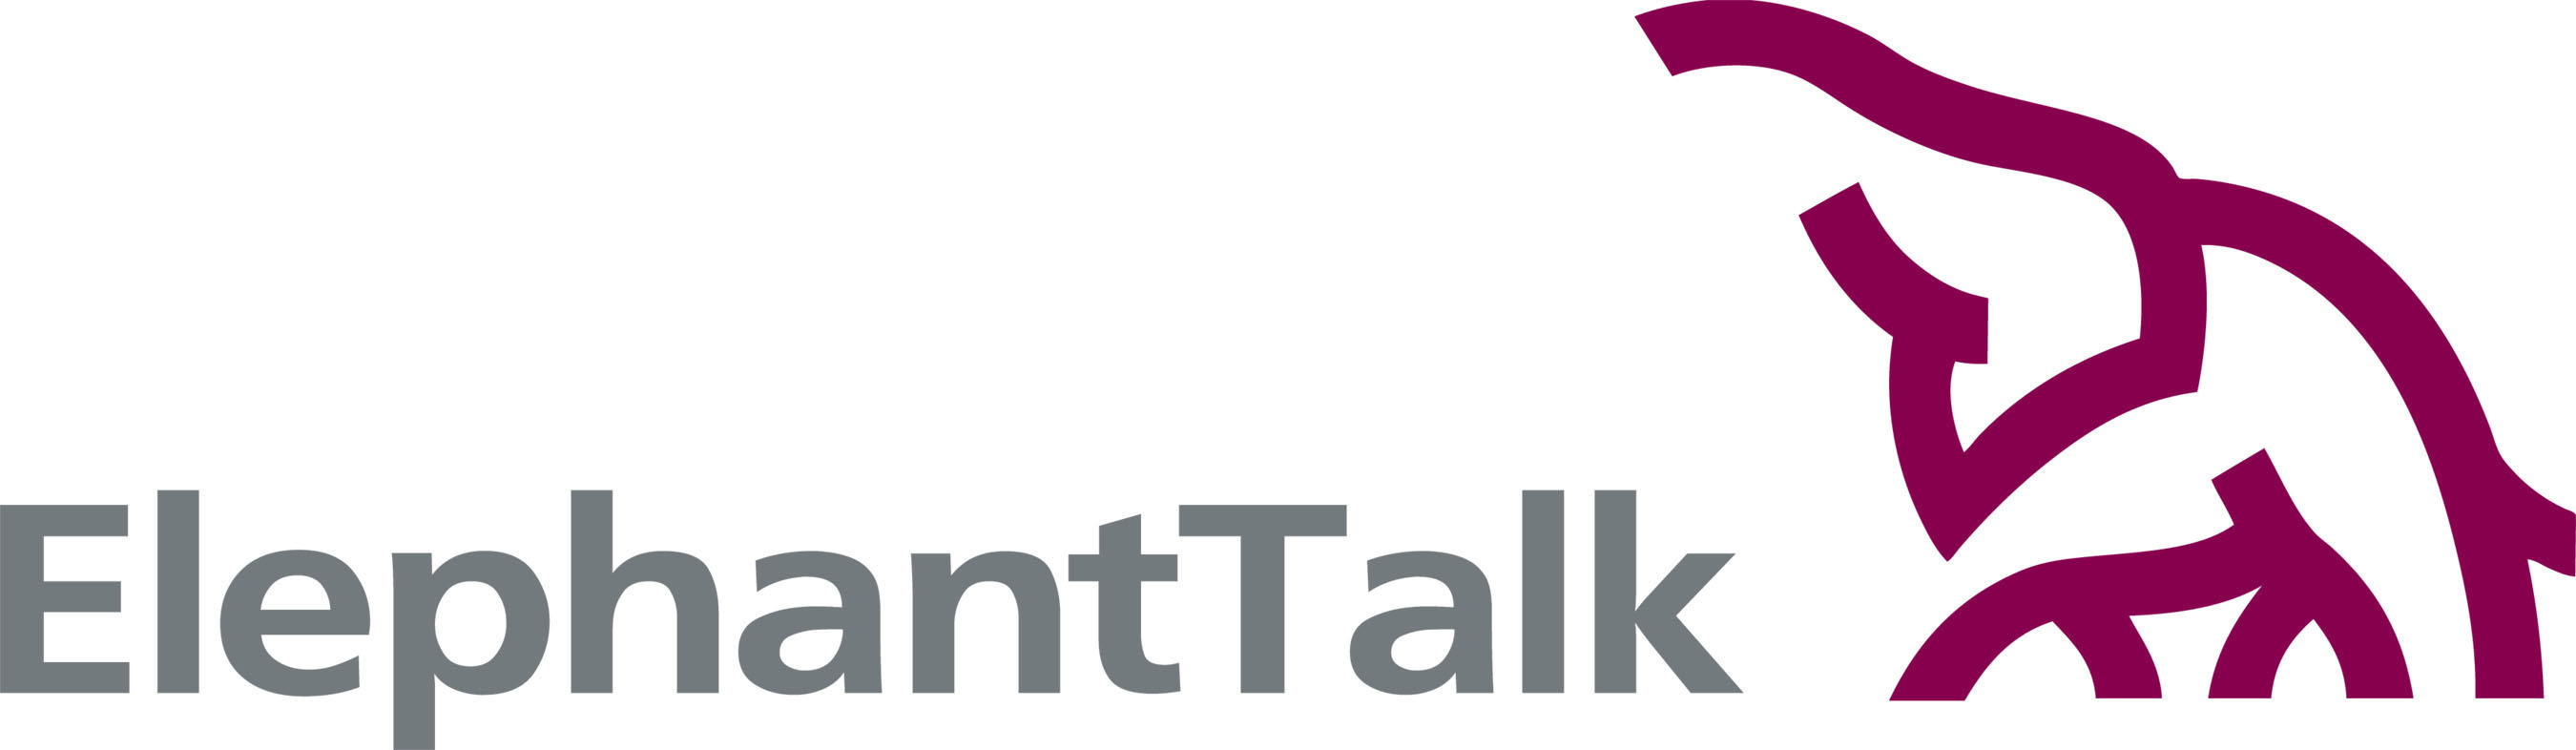 Elephant Talk Communications' Logo.